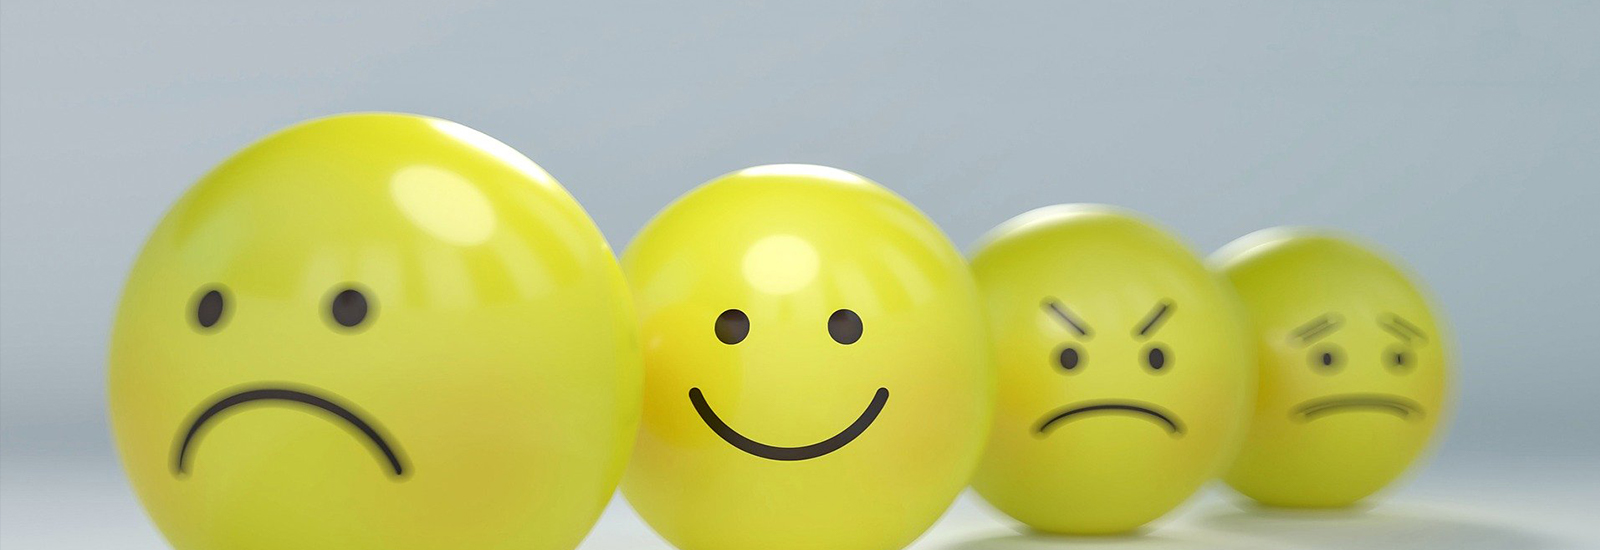 Showing Emotion at Work Can Boost Your Team's Performance